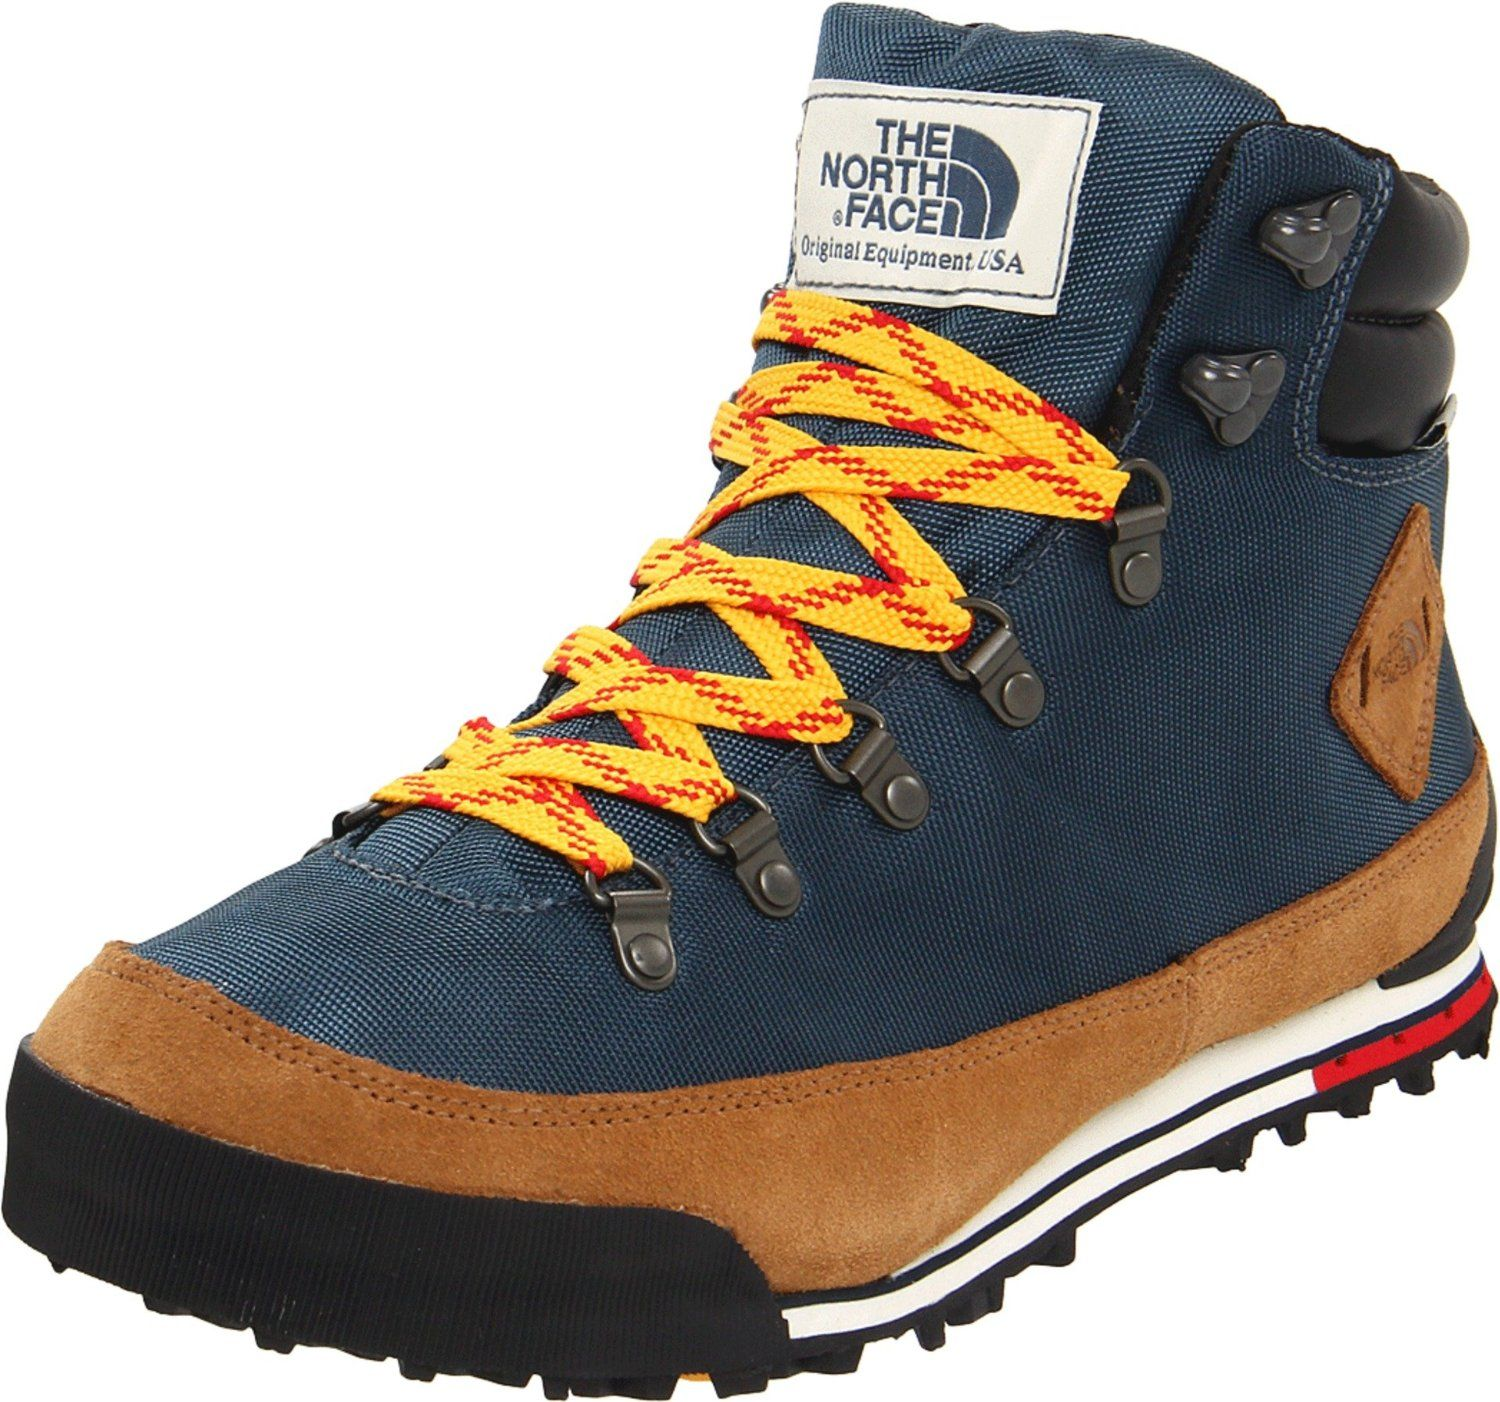 945f658d8 The North Face Back-To-Berkeley Boots $120 | Bare feet in 2019 ...